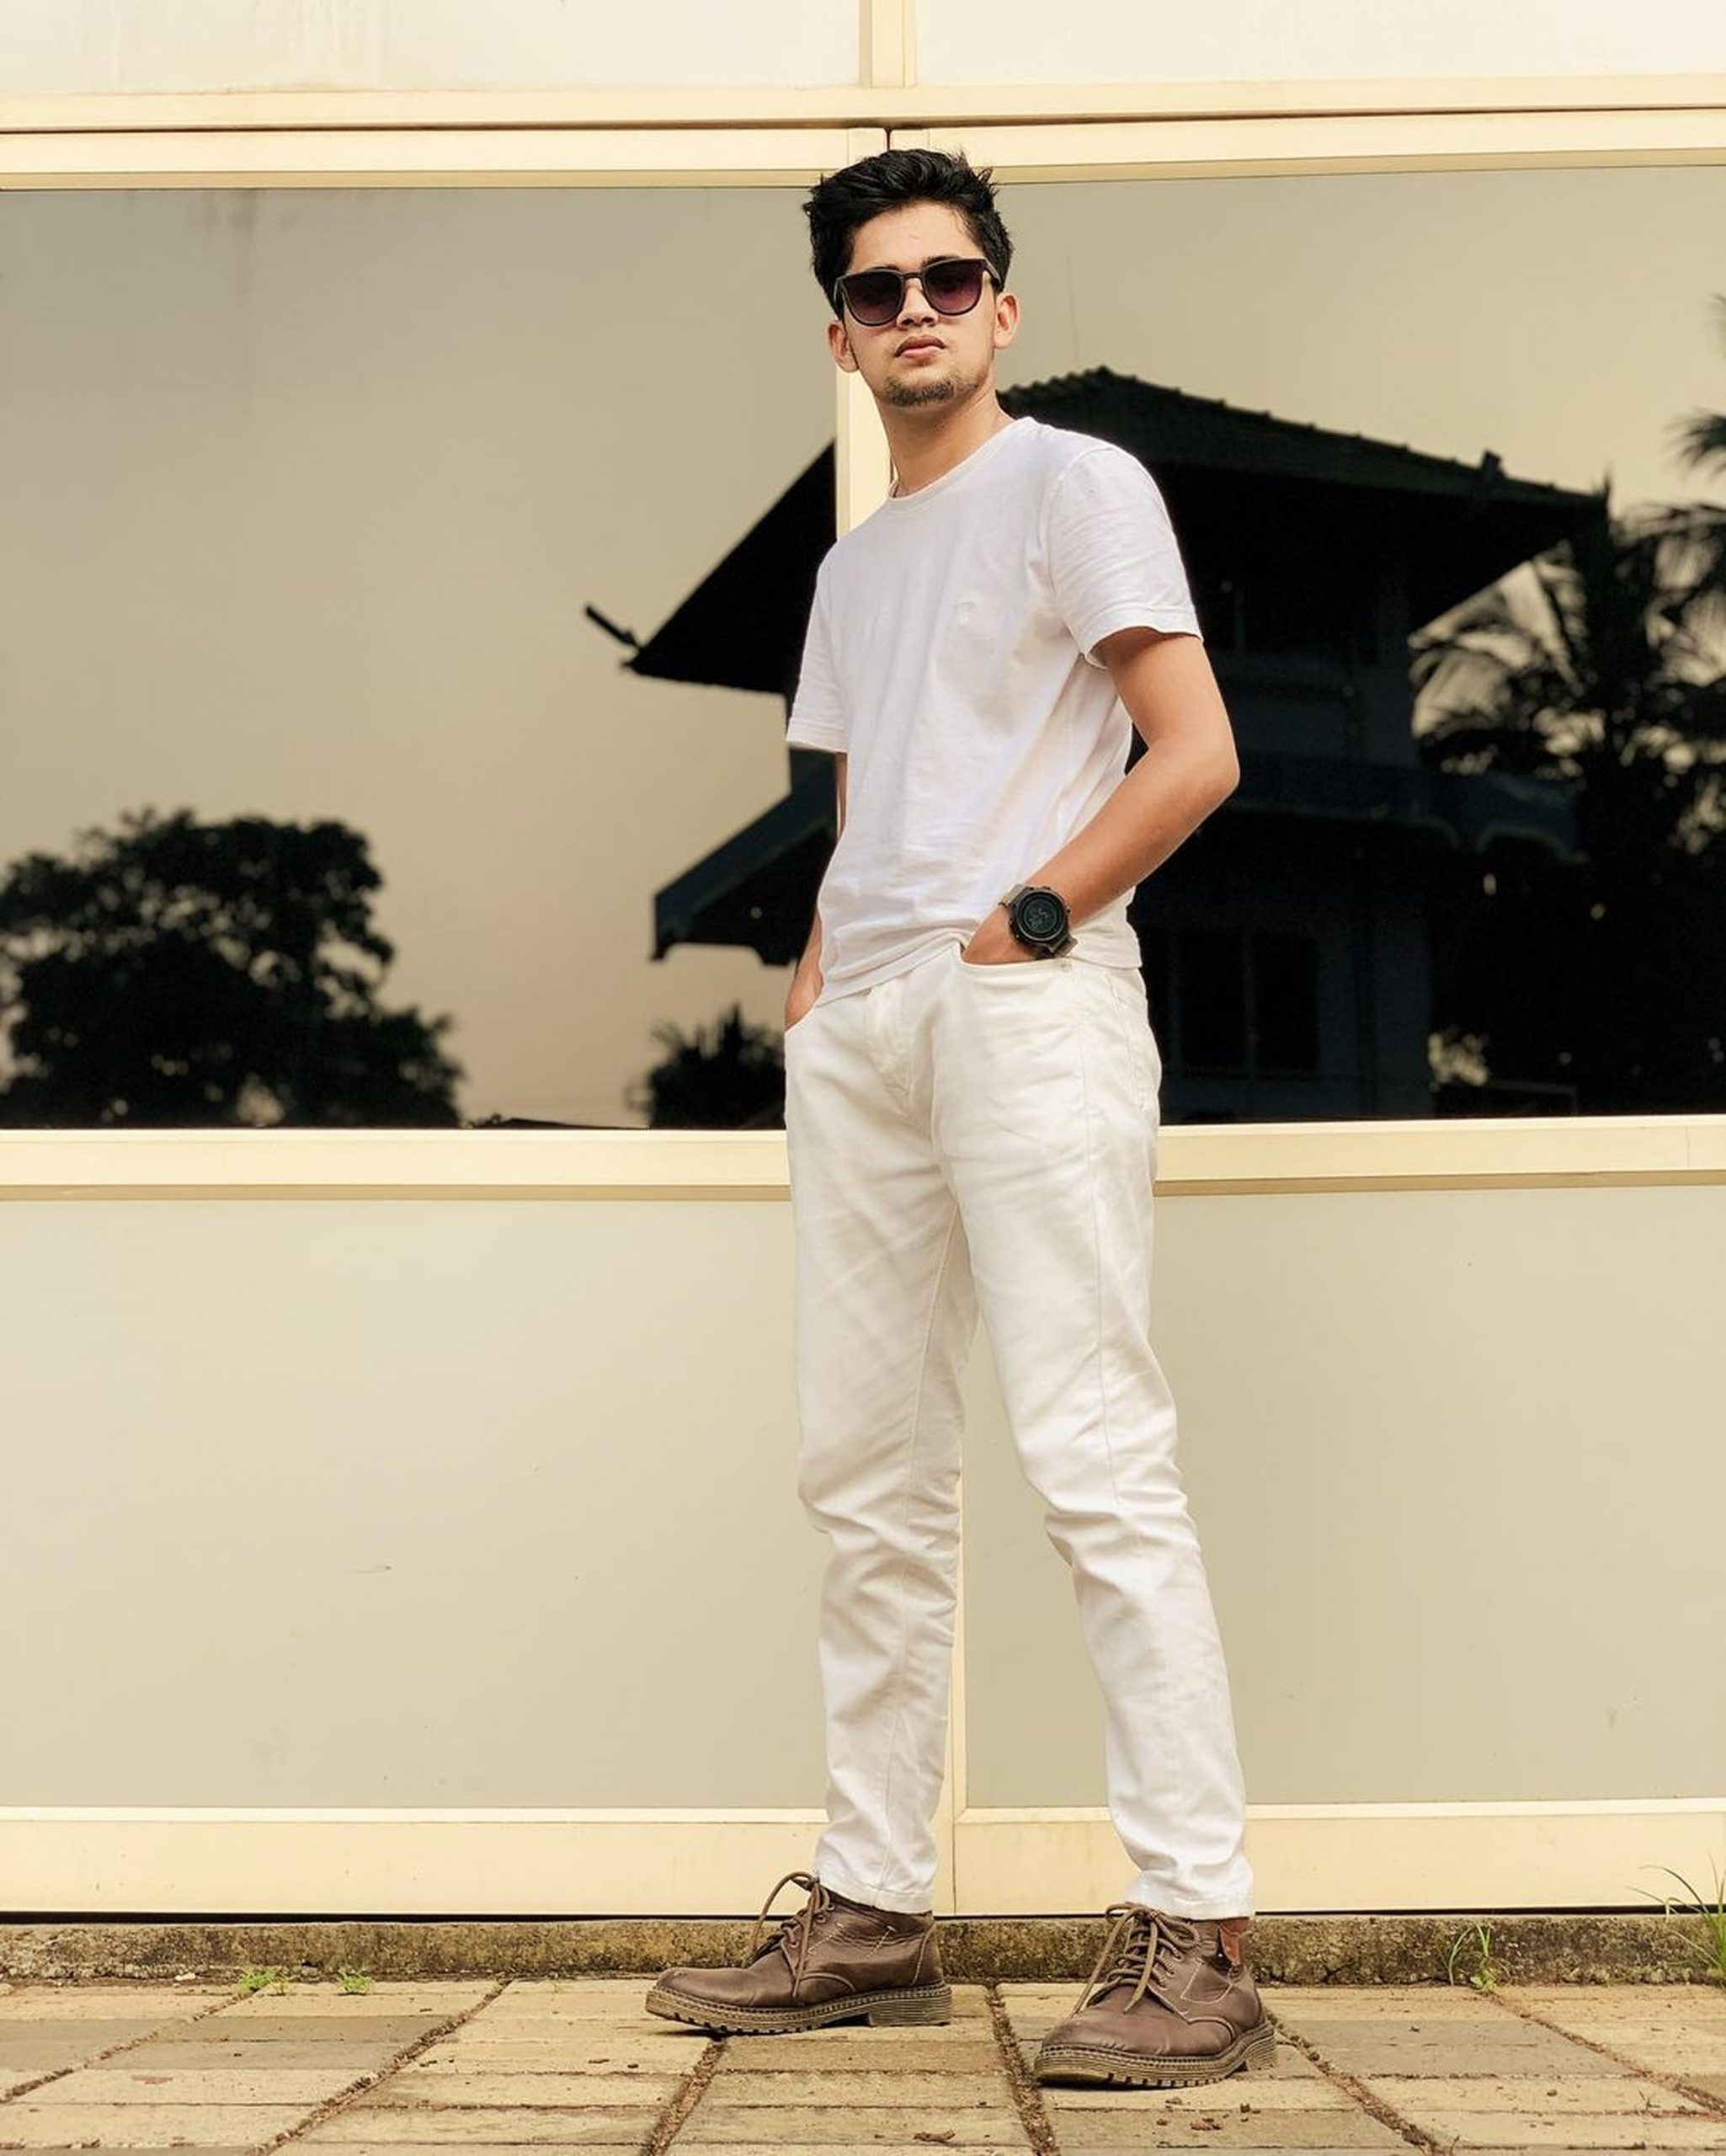 Stylish boy posing with sunglasses